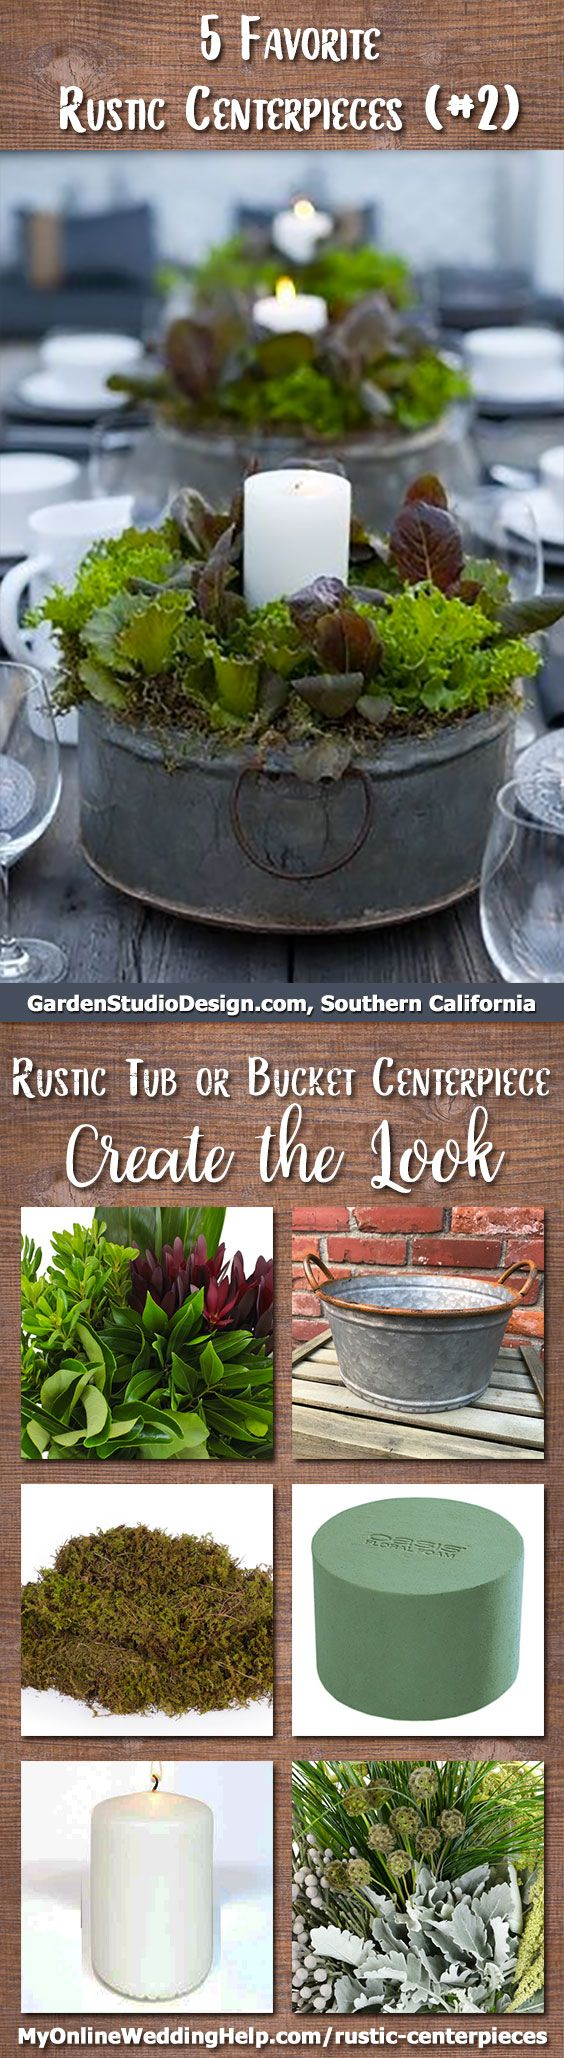 Galvanized rustic tub or bucket centerpiece. This is made of multicolor greenery (well, lettuce...but you can use regular greenery) and a pillar candle inside a weathered-looking steel tub. There are links and information on the page on how to DIY your own centerpiece and/or contact vendors and artisans. | Arrangement by Garden Studio, a full service landscape design company in Southern California.